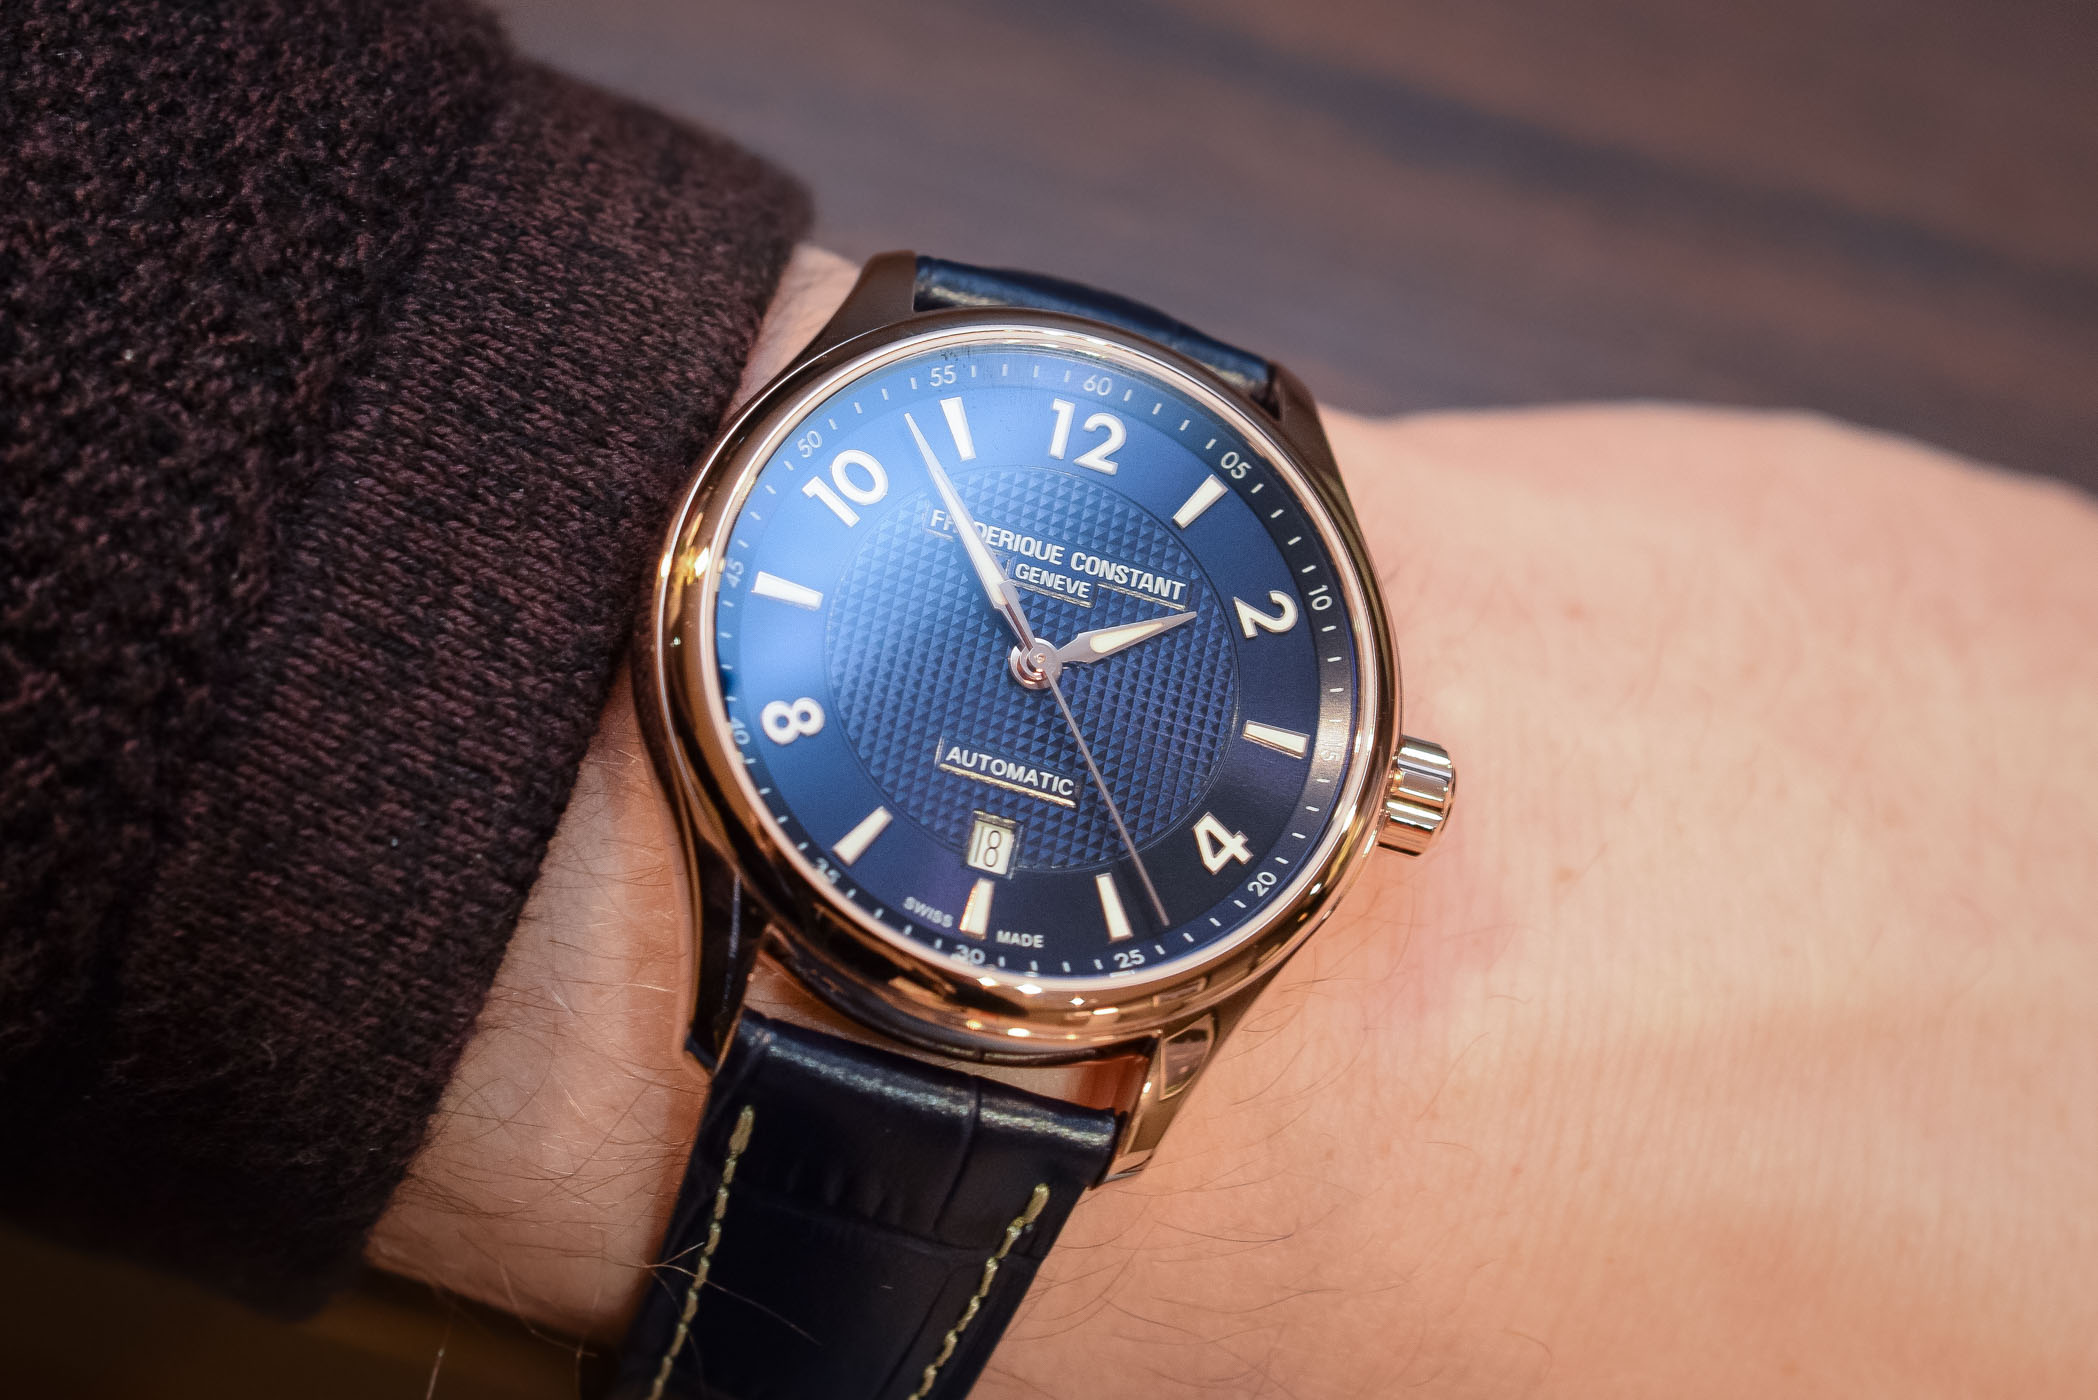 2018 Frederique Constant Automatic Runabout Limited Edition